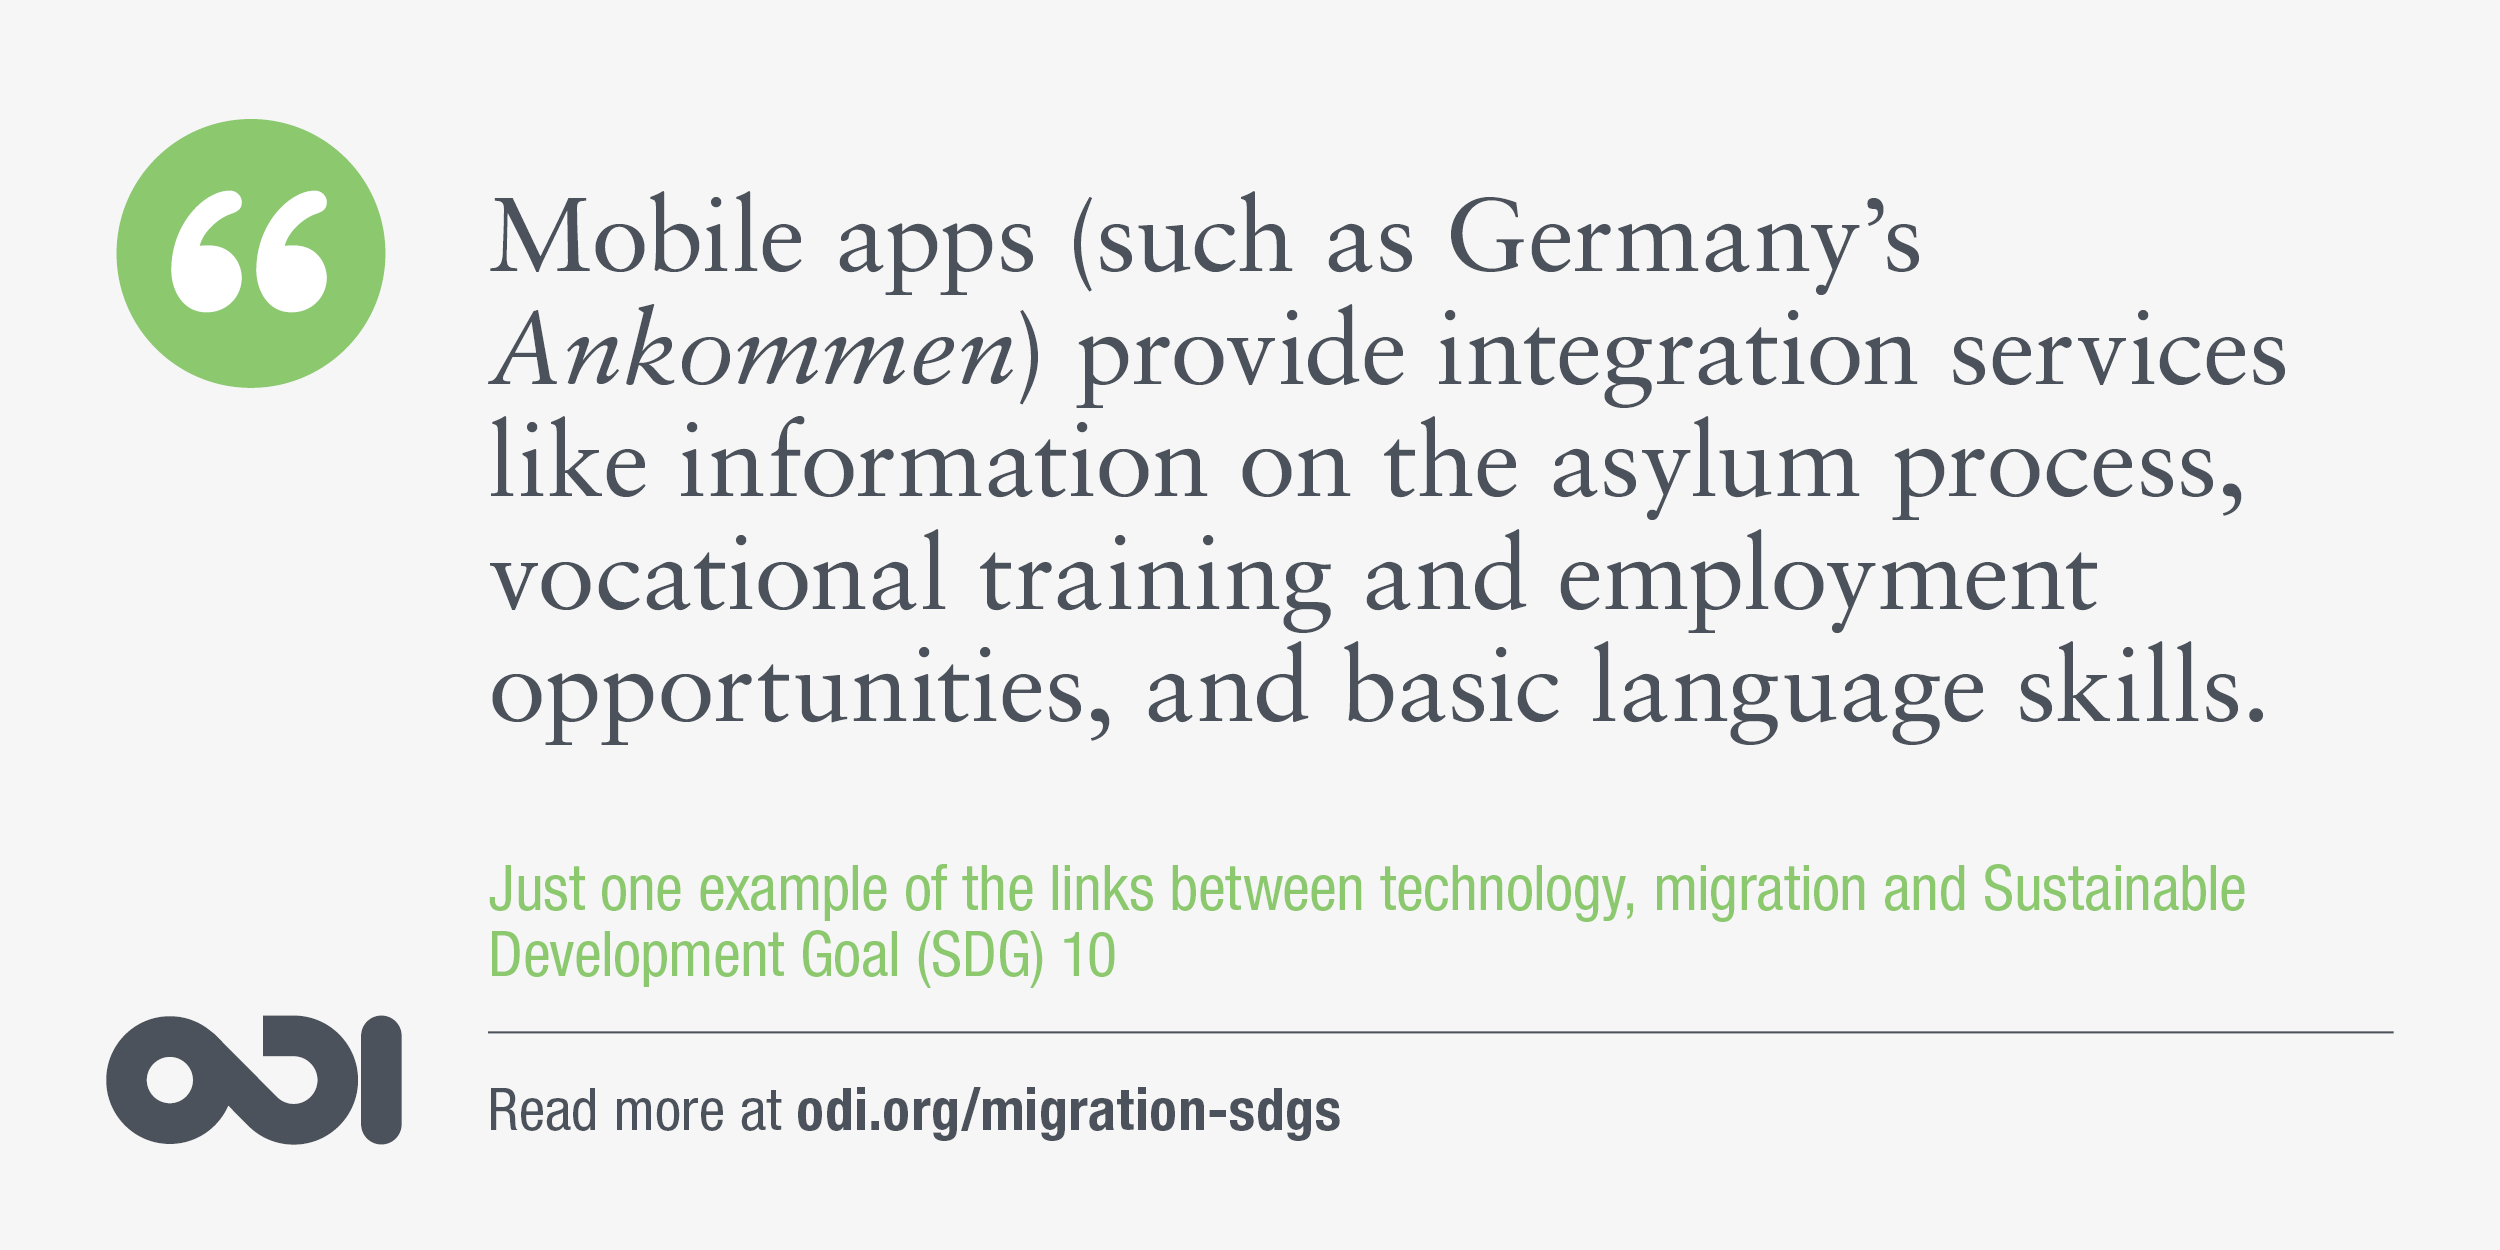 The links between technology, migration and SDG 10.